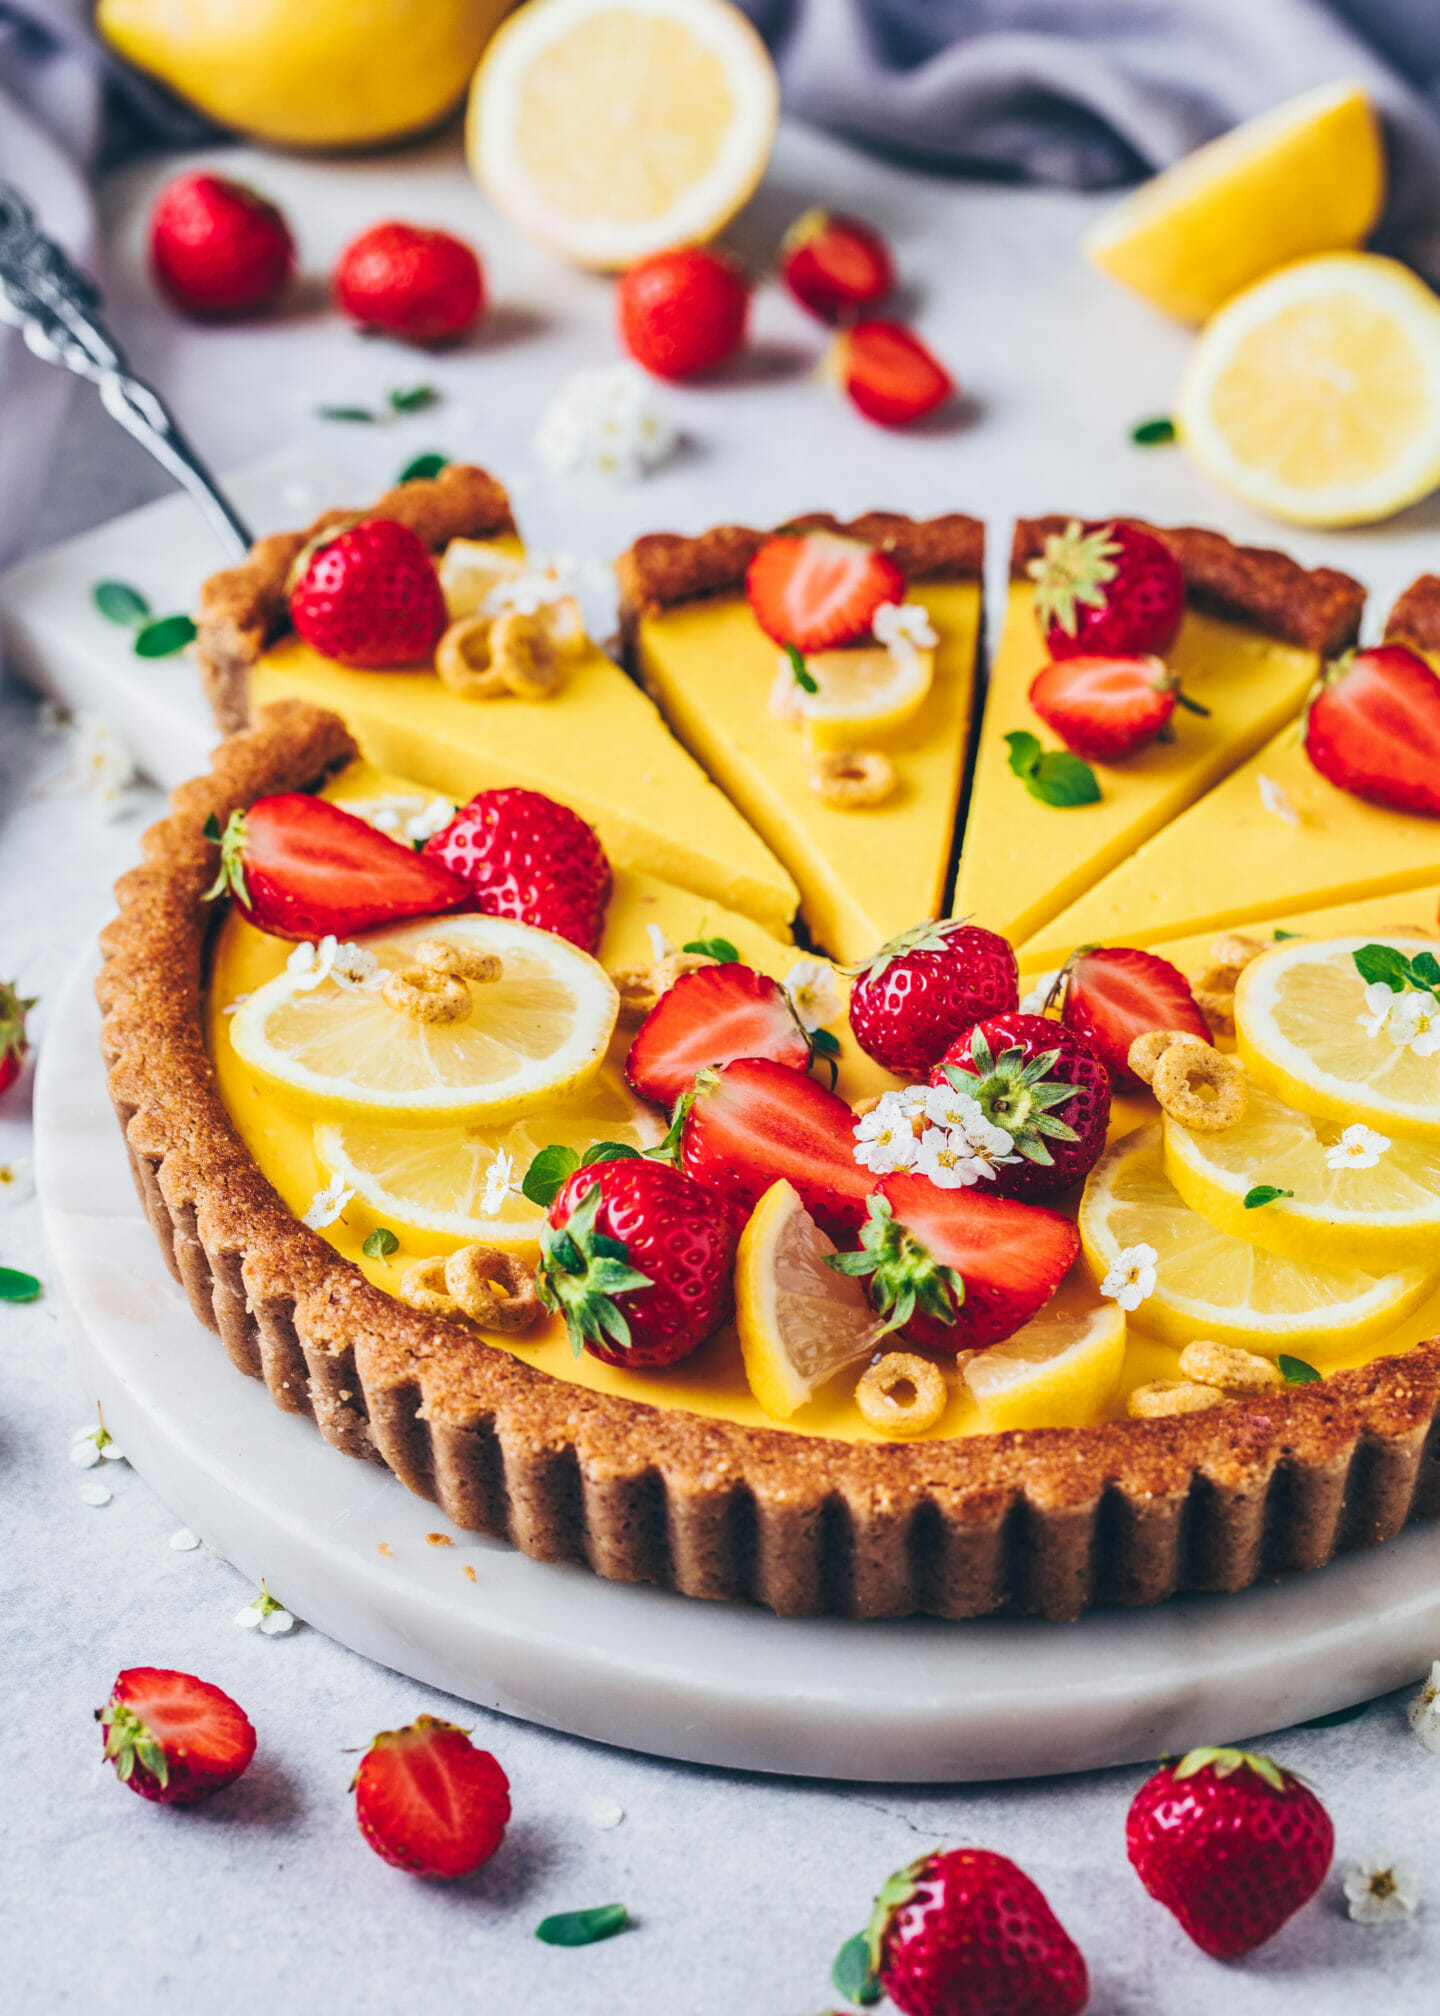 Lemon Tart with Strawberries (Food Photography, Food Styling)